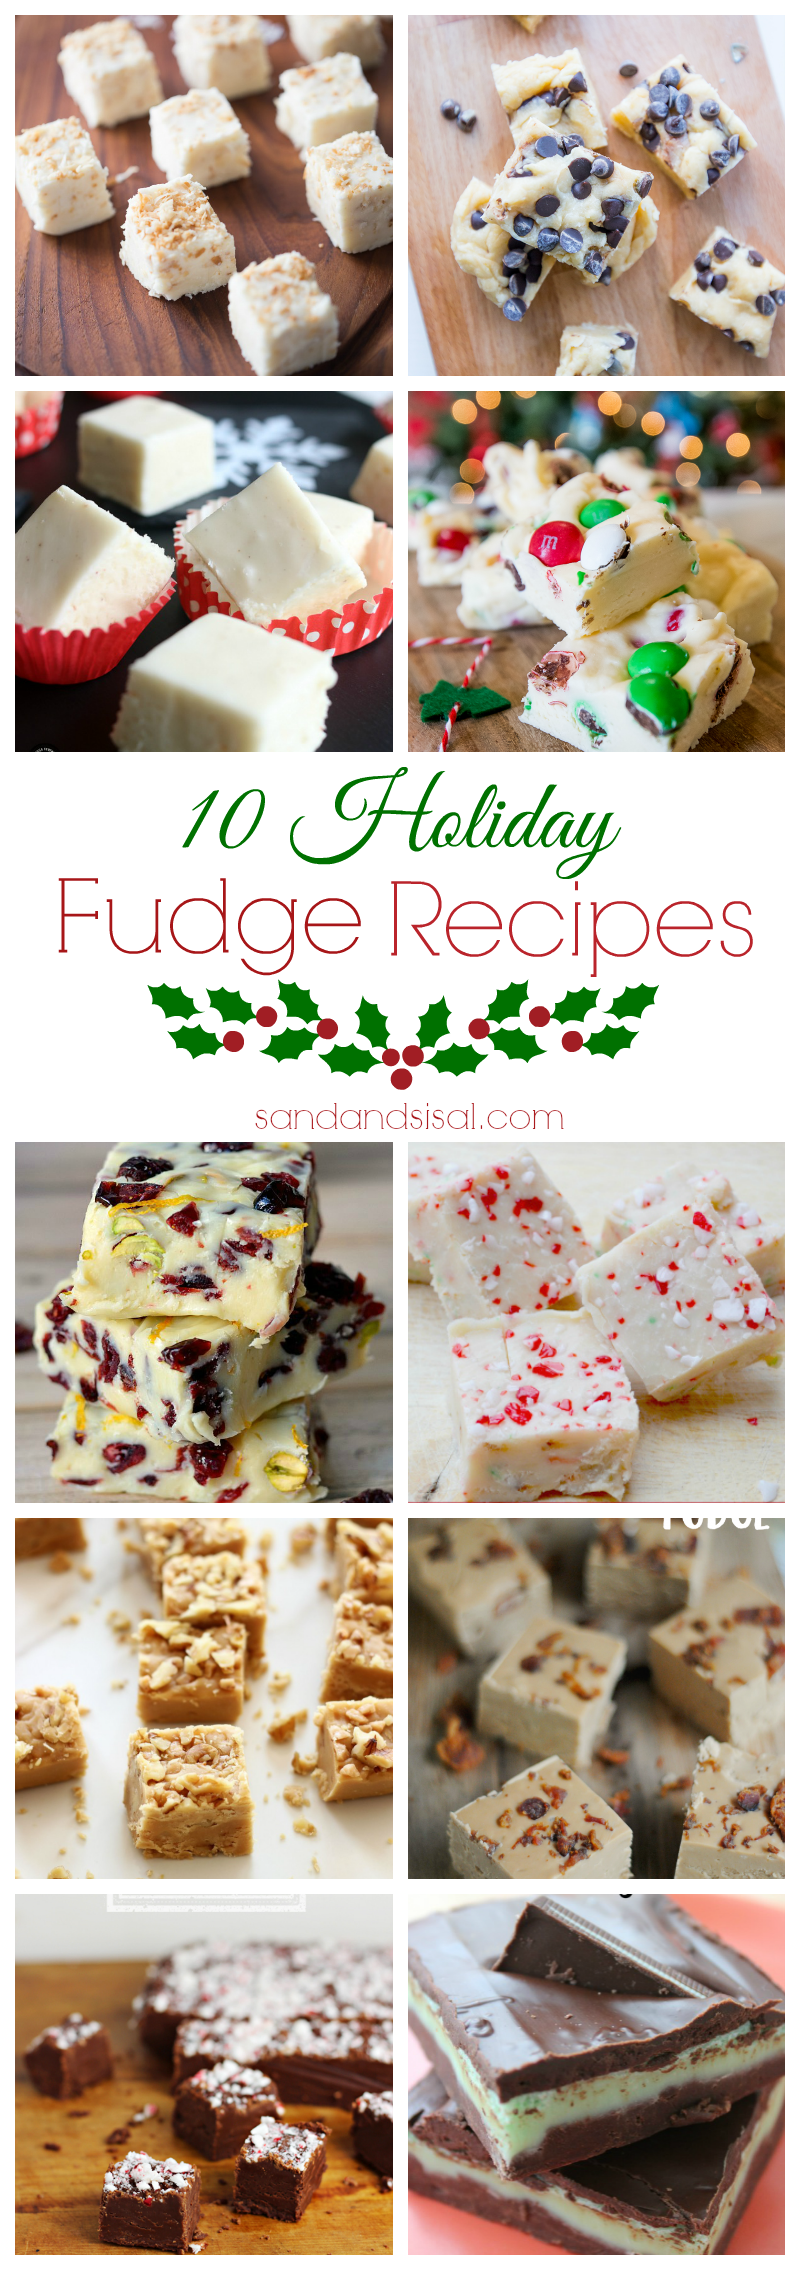 10 Holiday Fudge Recipes